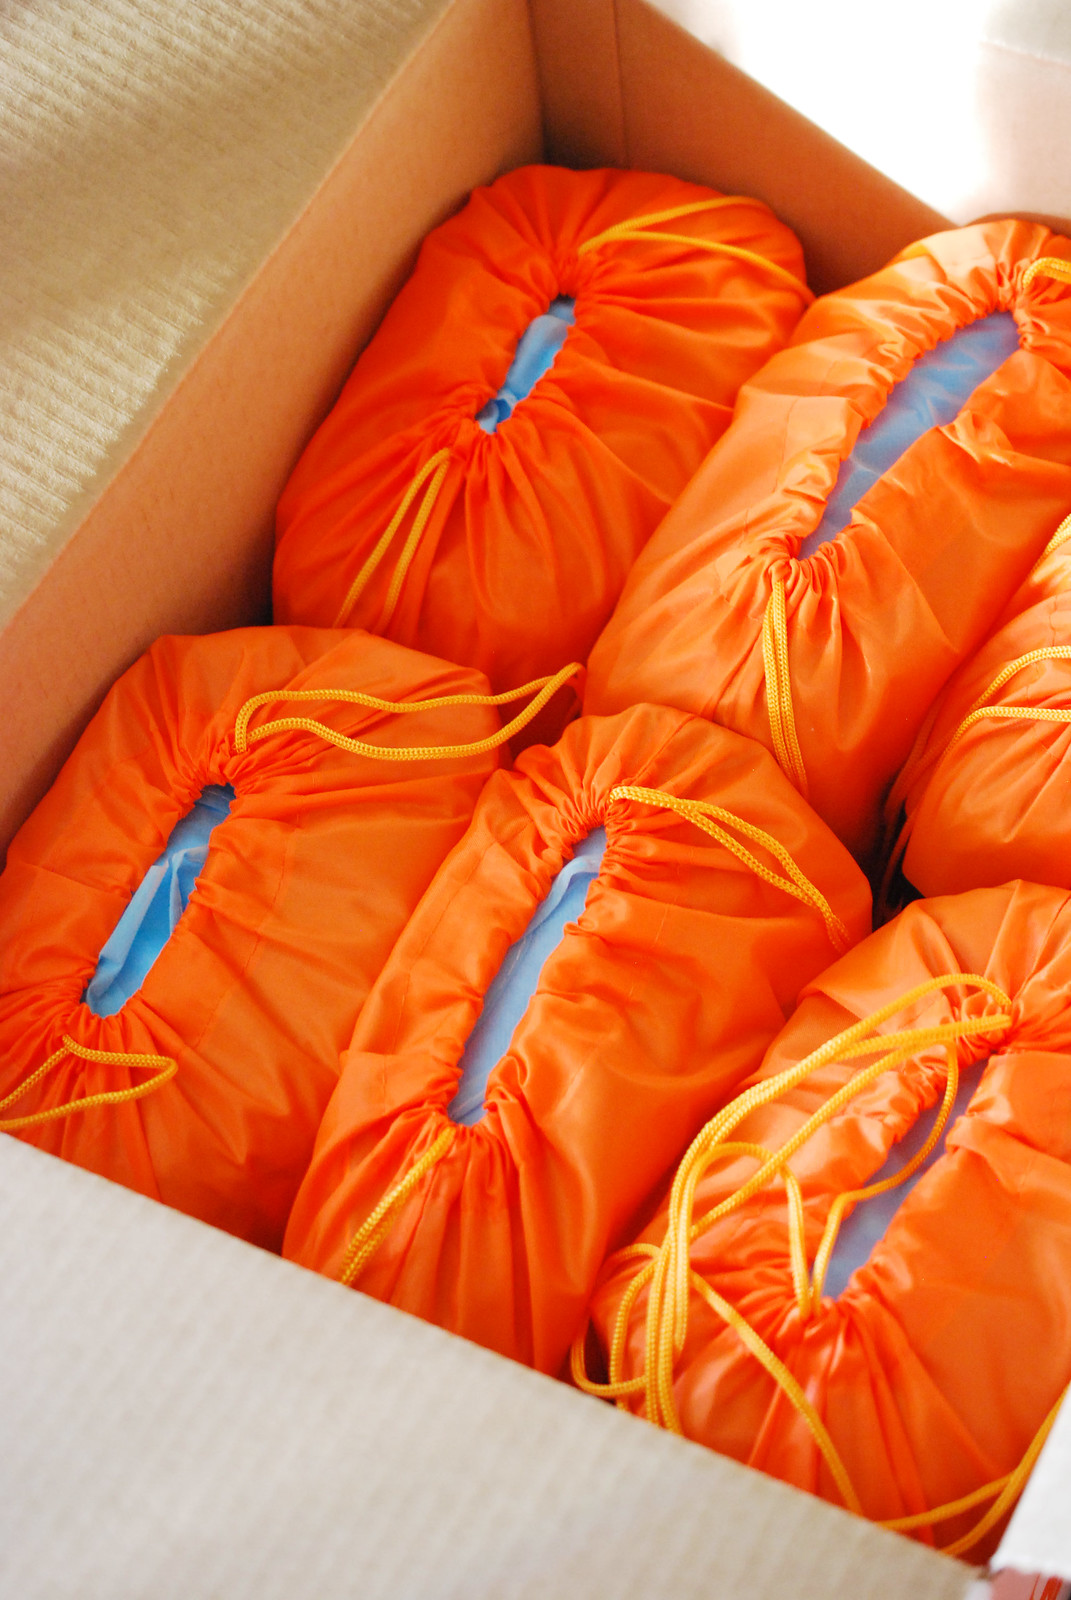 Ebola Caregiver Kits